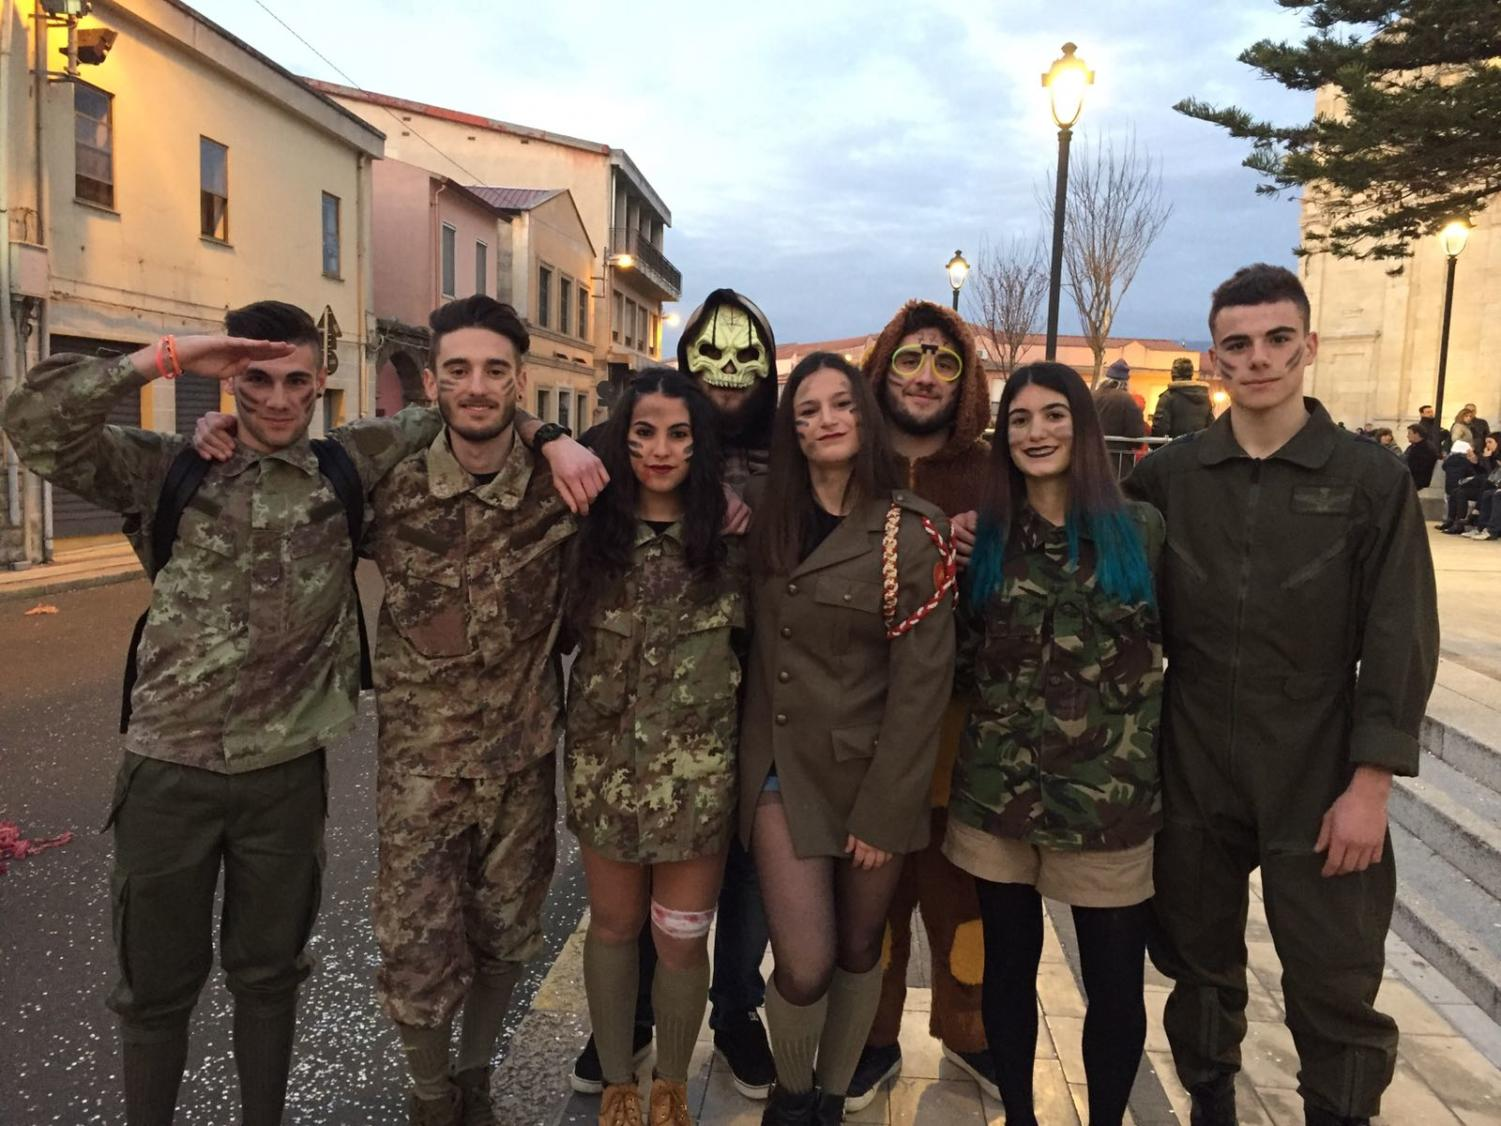 Italian exchange student Valentina Frau hangs out with her friends in her city of Terralba during Carnival, an Italian festival similar to Mardi Gras.